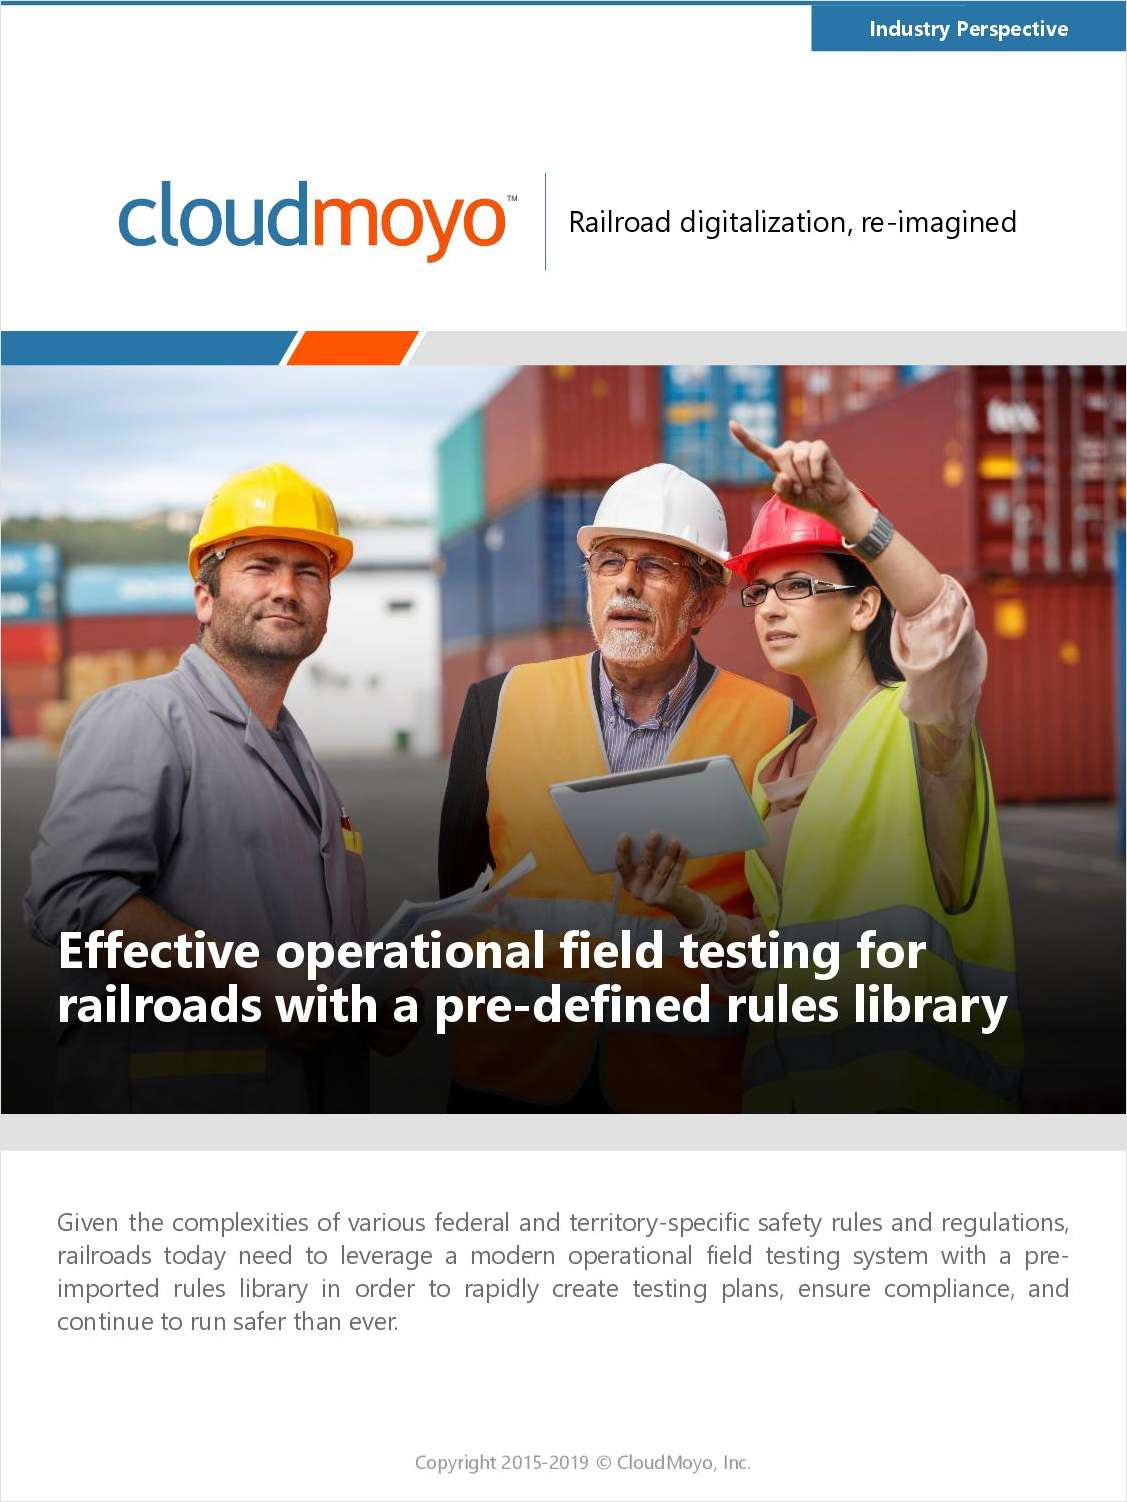 Effective Operational Field Testing for Railroads with a Pre-Defined Rules Library